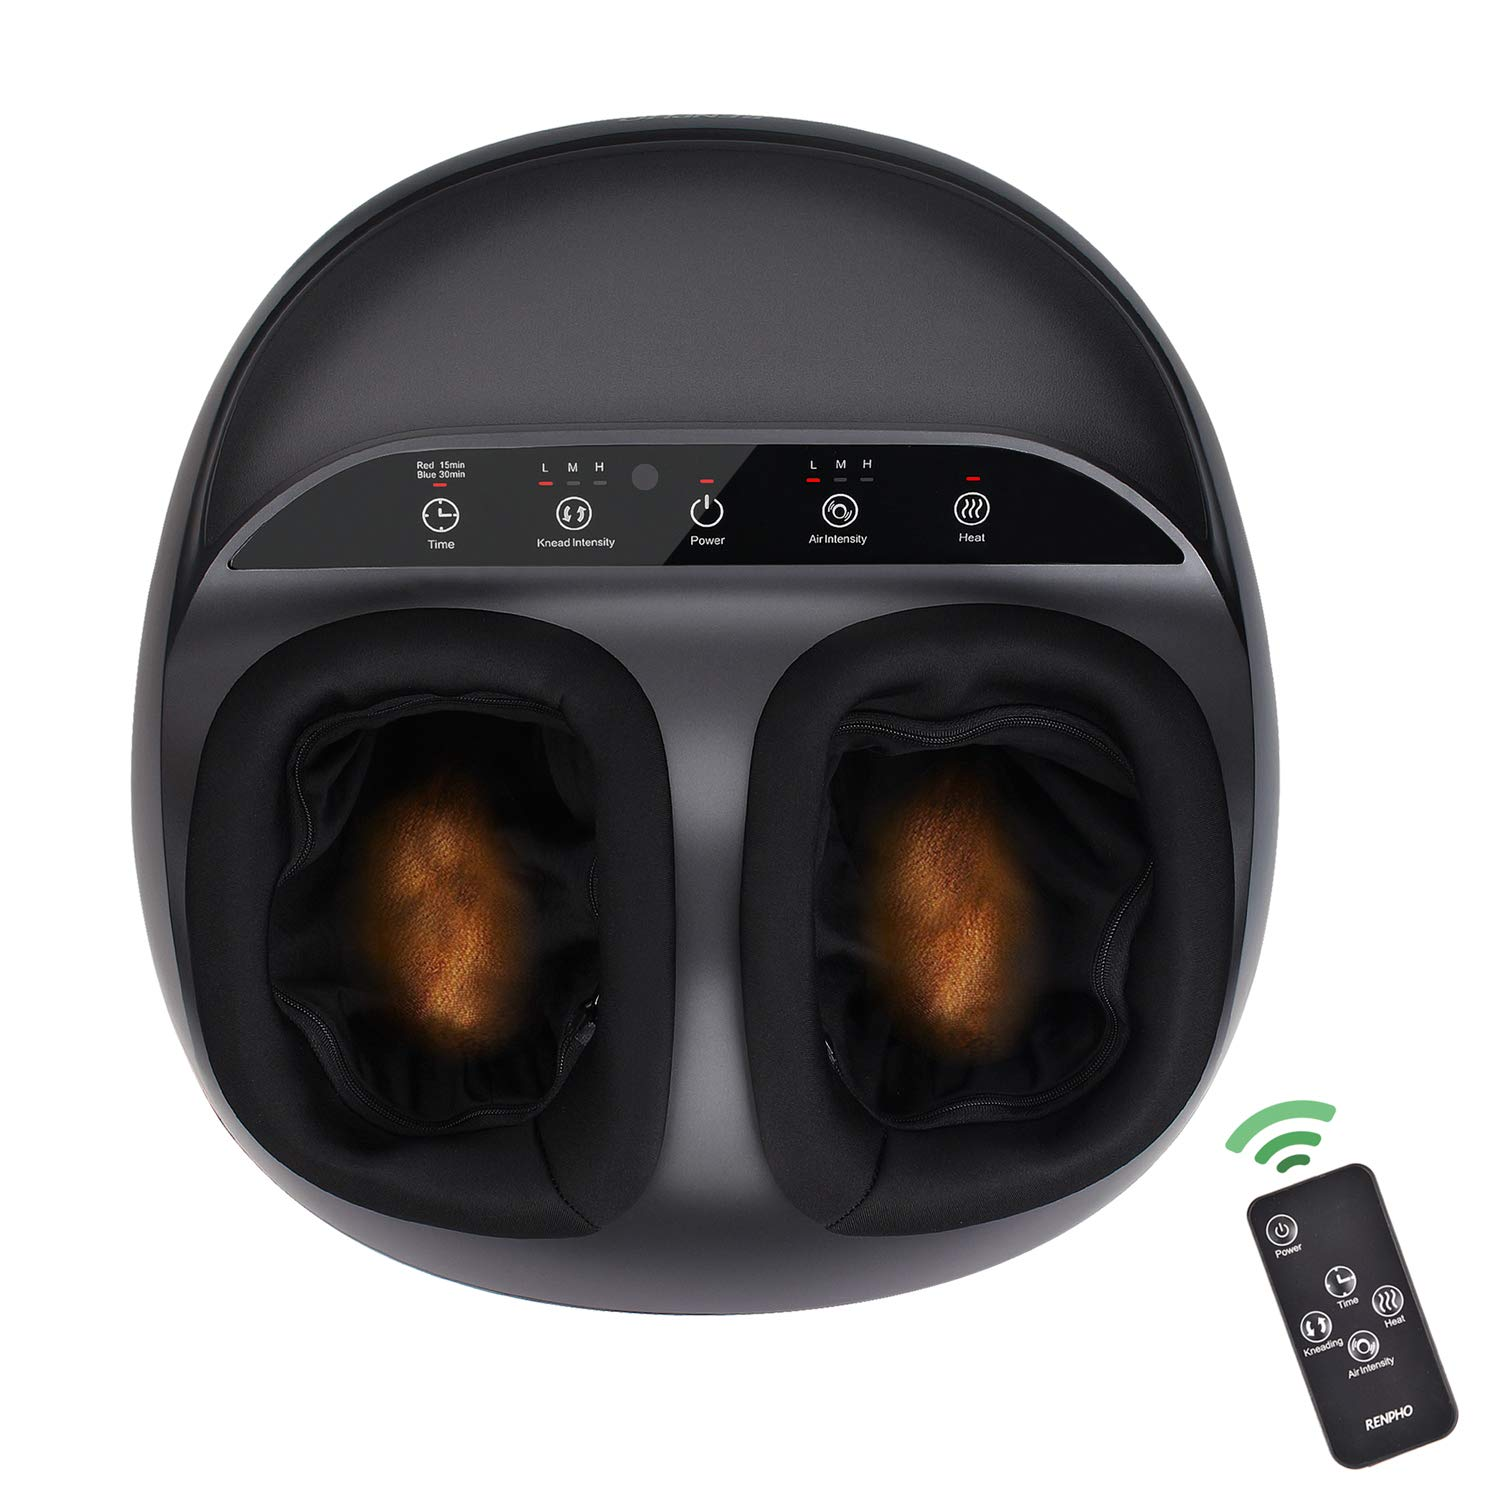 RENPHO Shiatsu Foot Massager Machine review